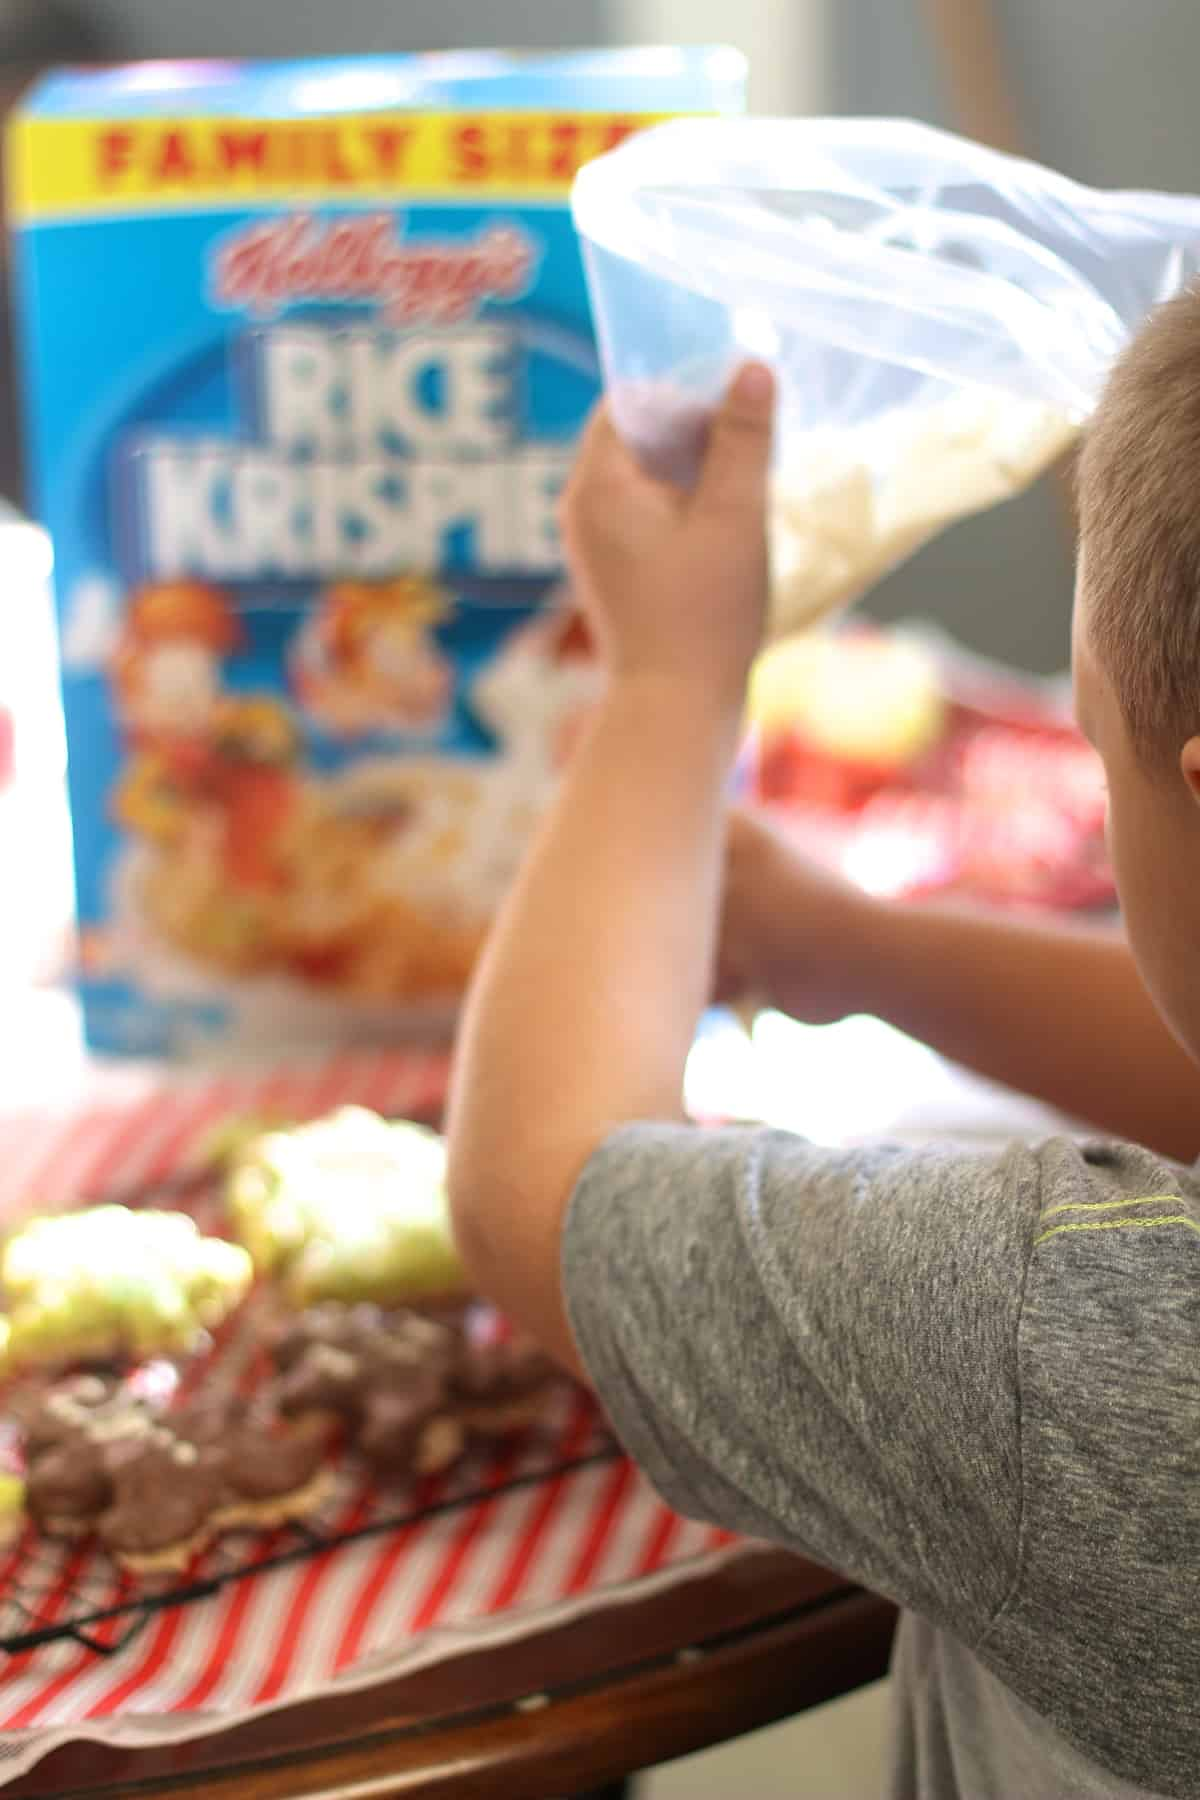 Decorating the Rice Krispies Cut-Outs